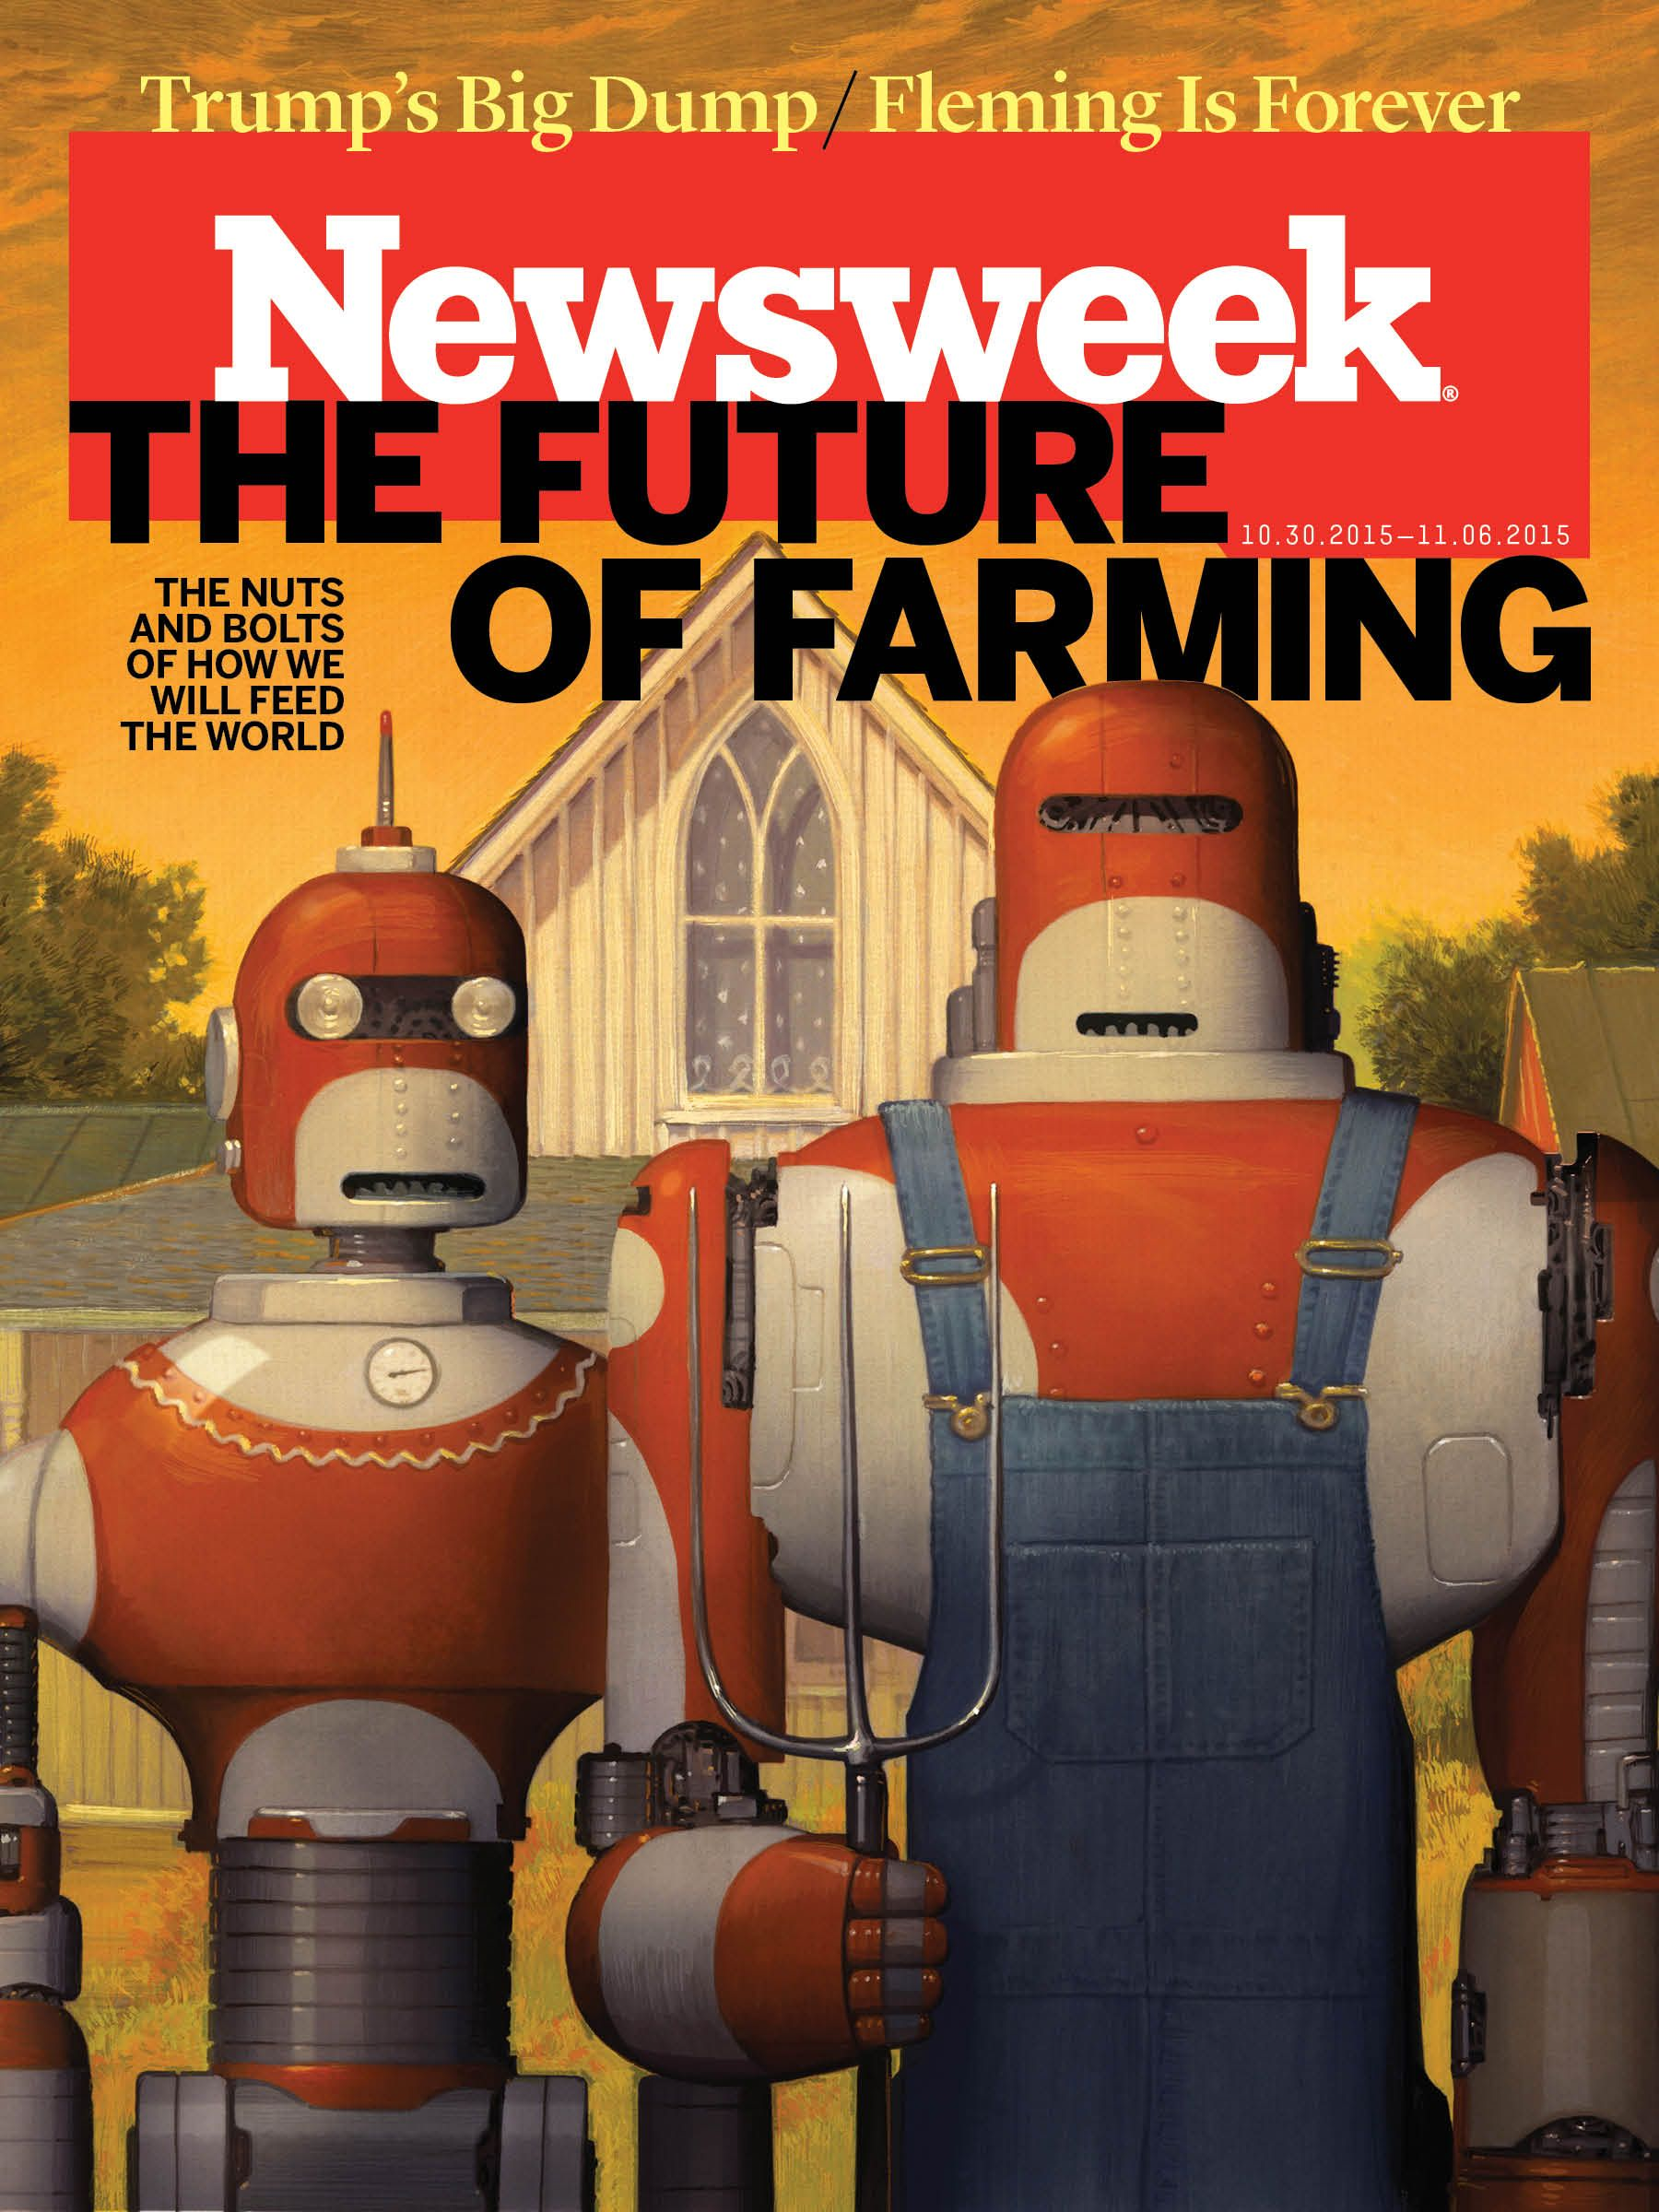 http://www.newsweek.com/2015/10/30/feed-humankind-we-need-farms-future-today-385933.html